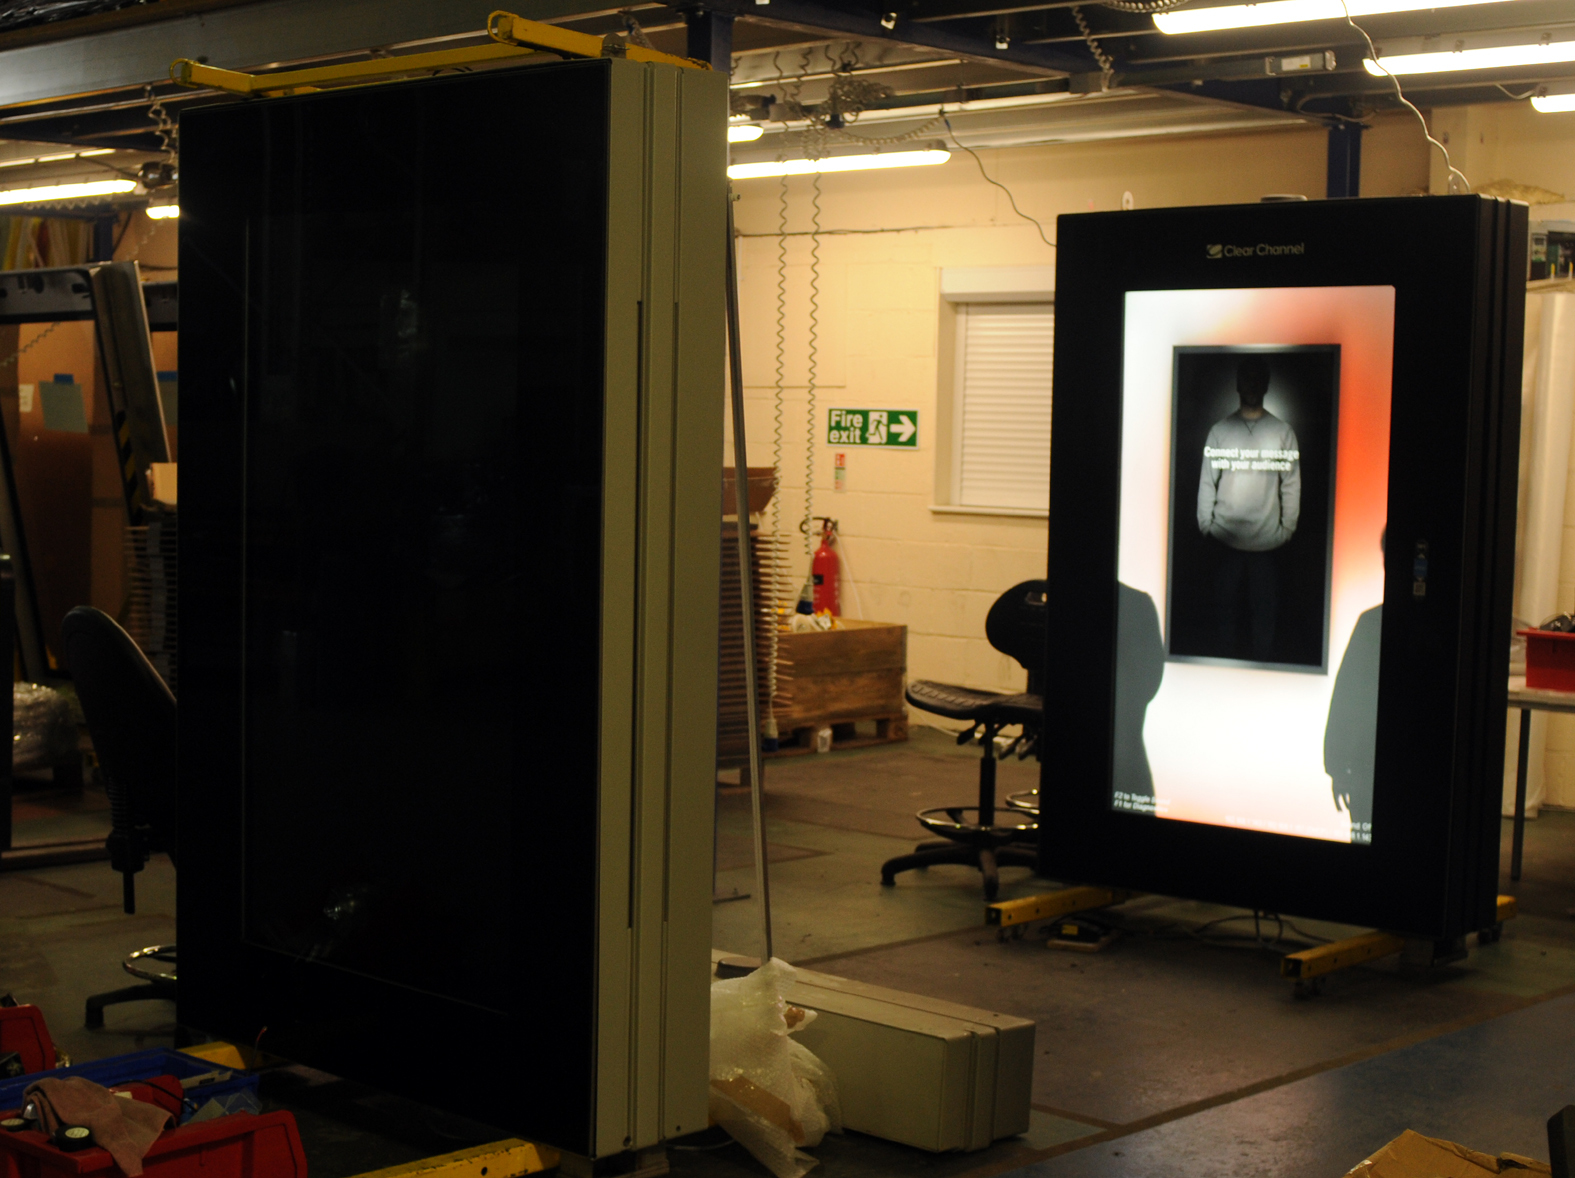 Work on the screens of new phone boxes at the Amscreen factory in Wingates.